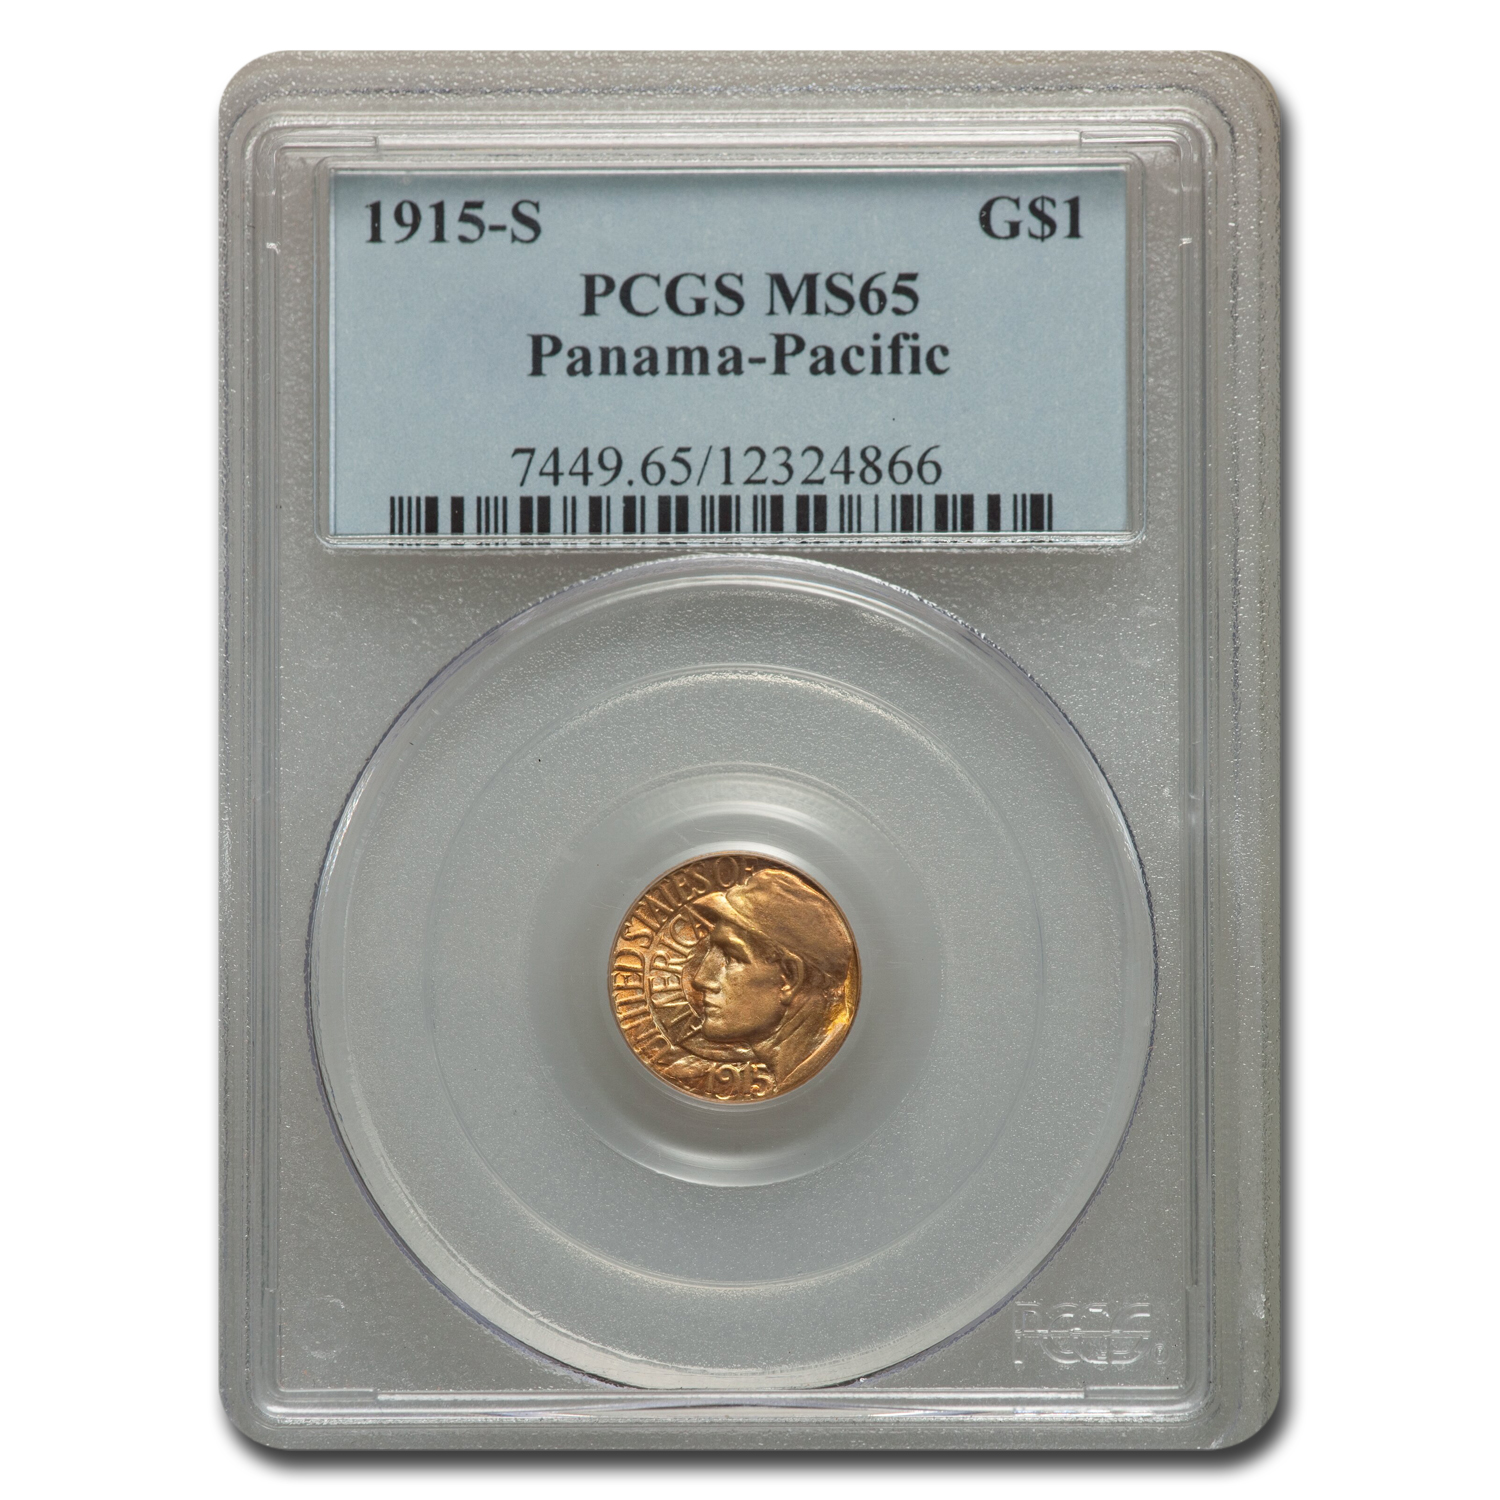 1915-S $1.00 Gold Panama-Pacific MS-65 PCGS